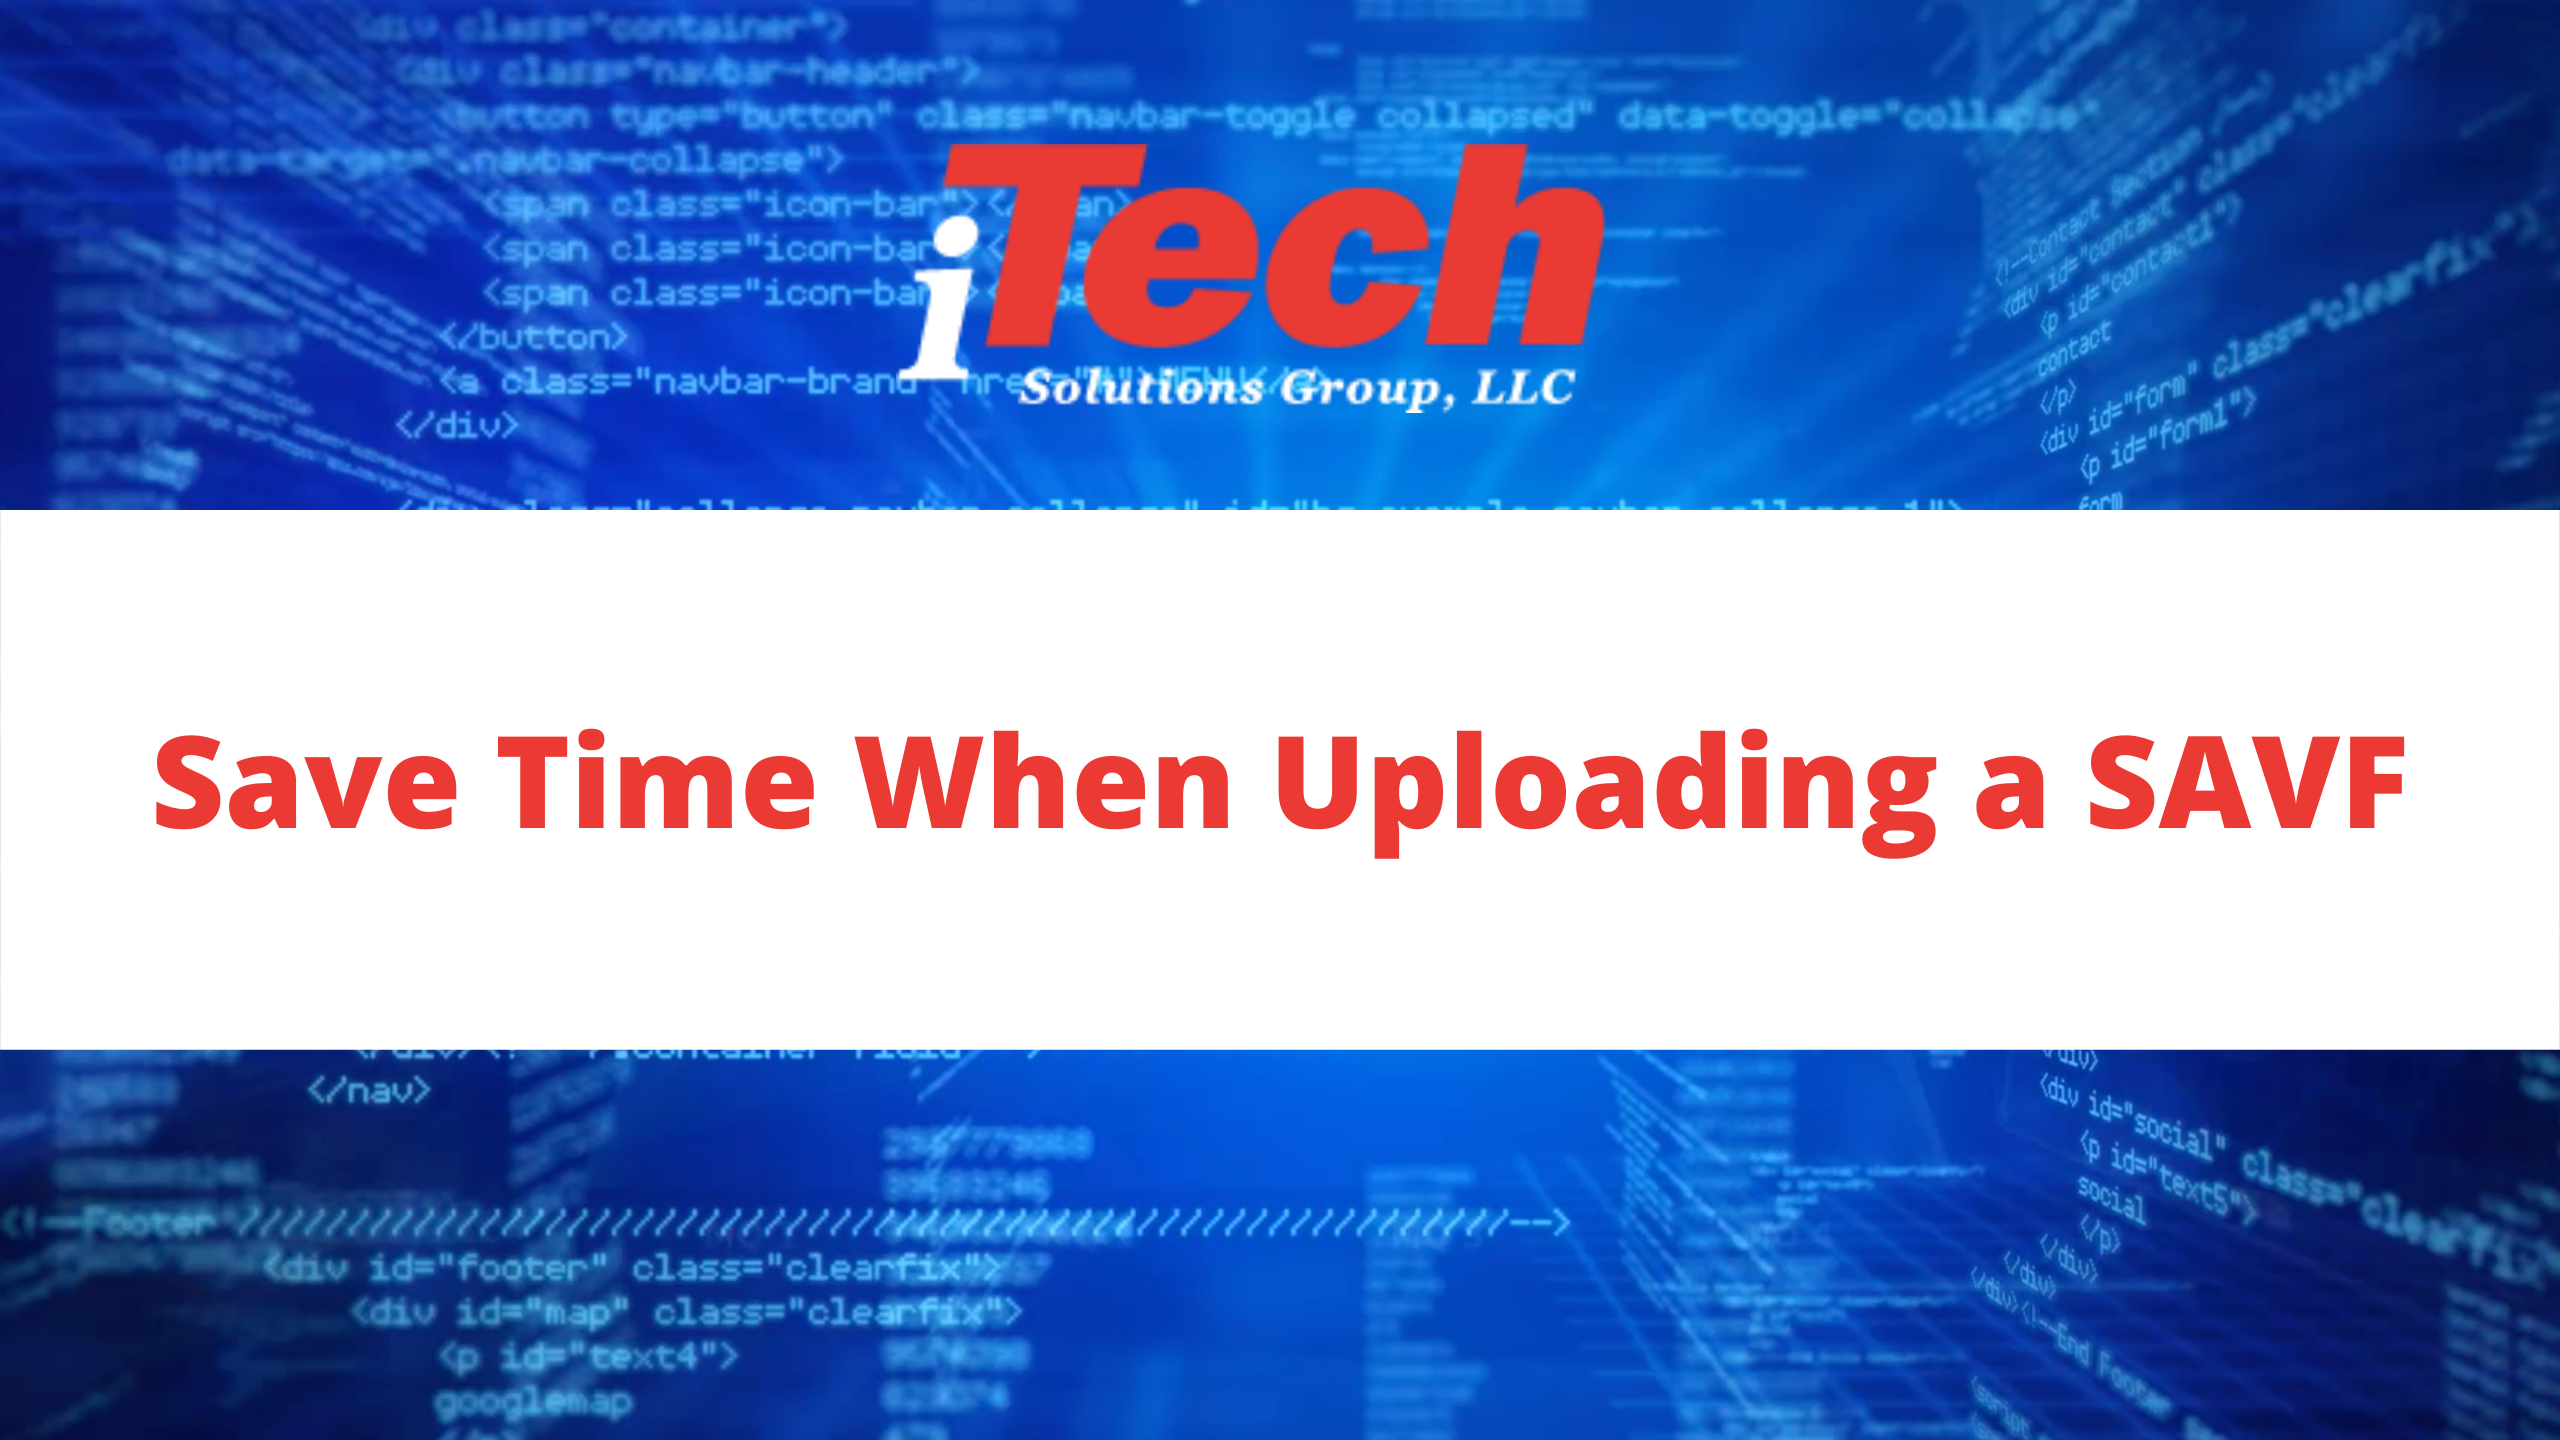 Save Time When Uploading a SAVF